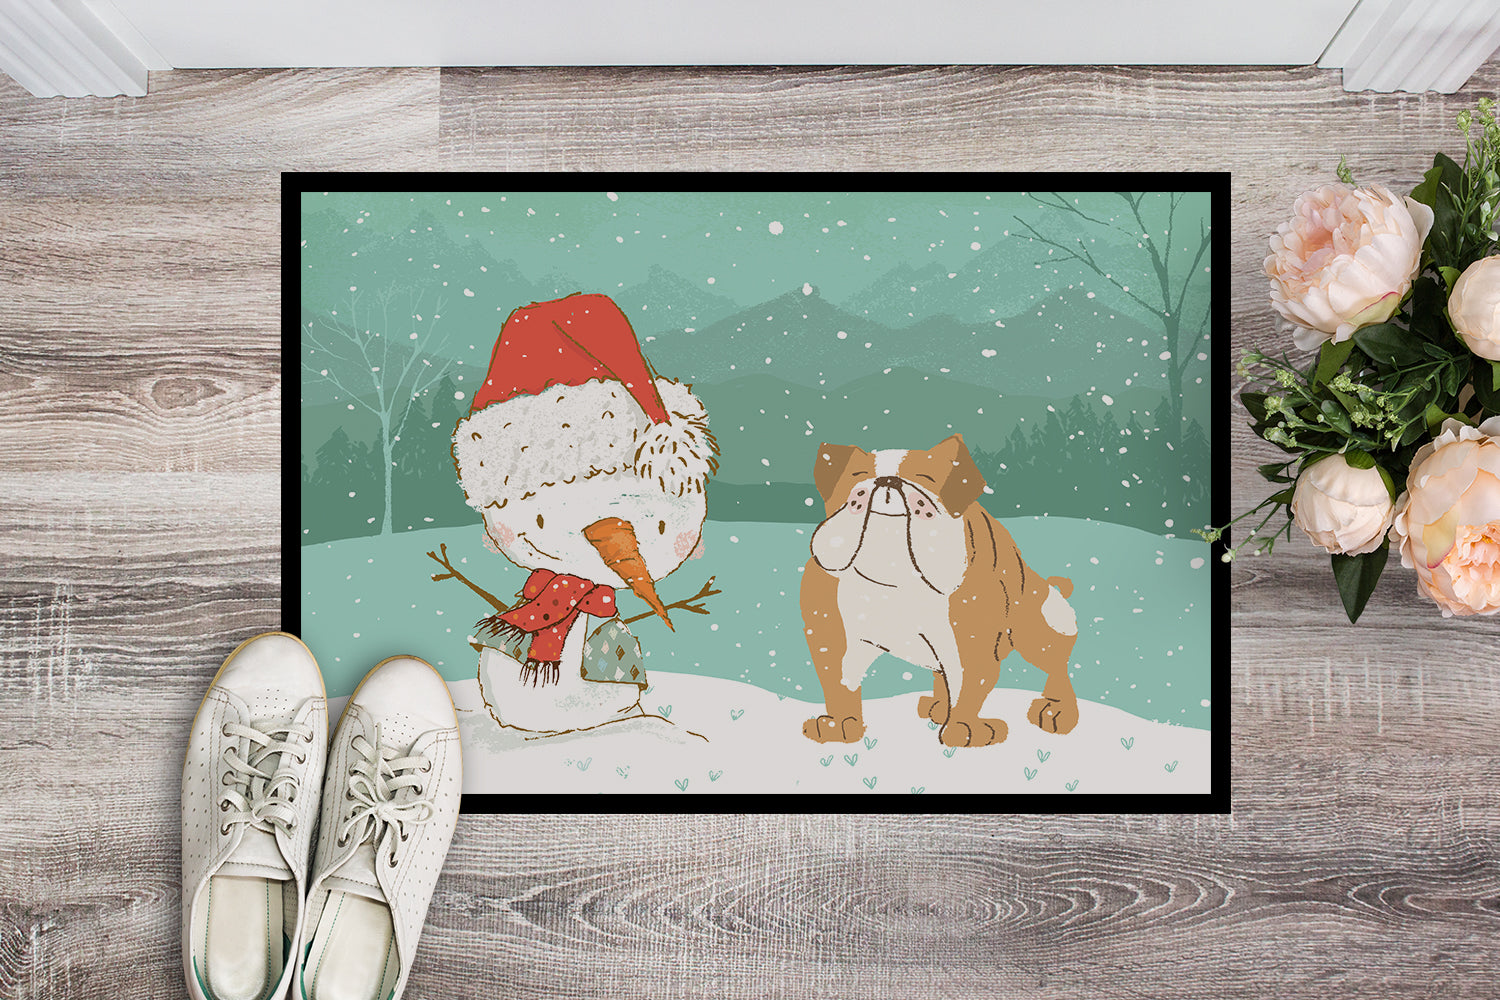 English Bulldog Snowman Christmas Indoor or Outdoor Mat 18x27 CK2053MAT by Caroline's Treasures